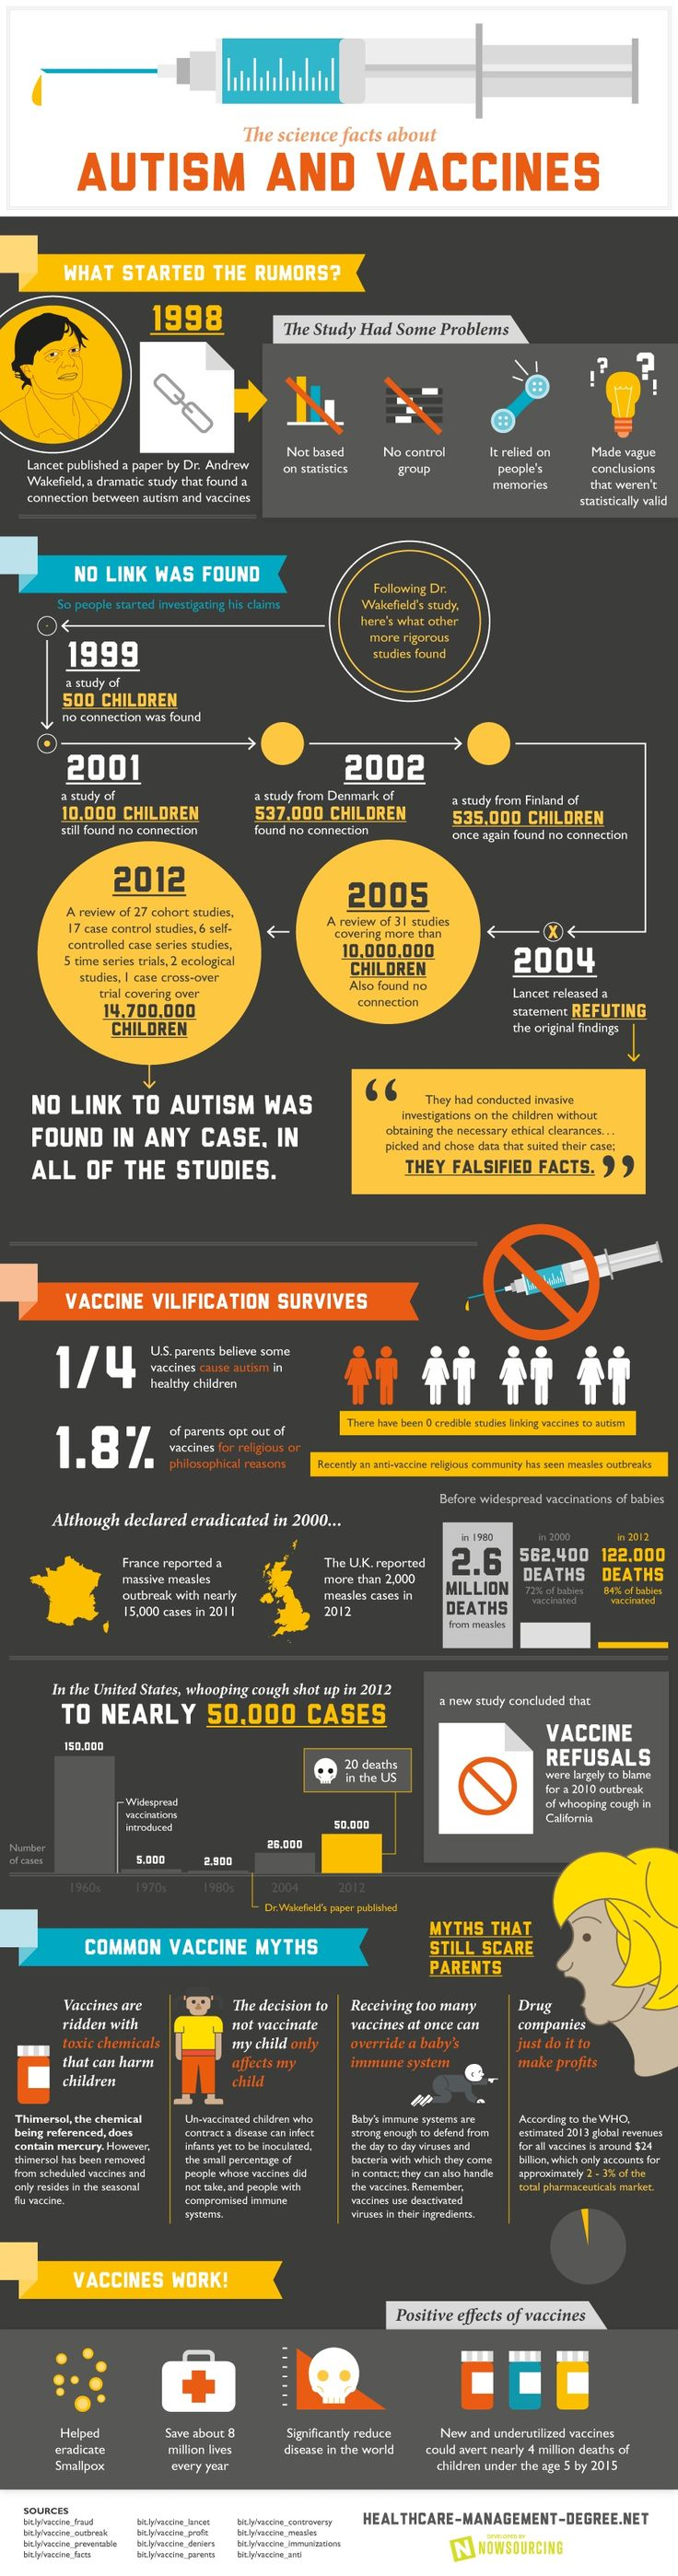 Important infographic: 16 years ago, a doctor published a study. It was completely made up, and it made us all sicker.